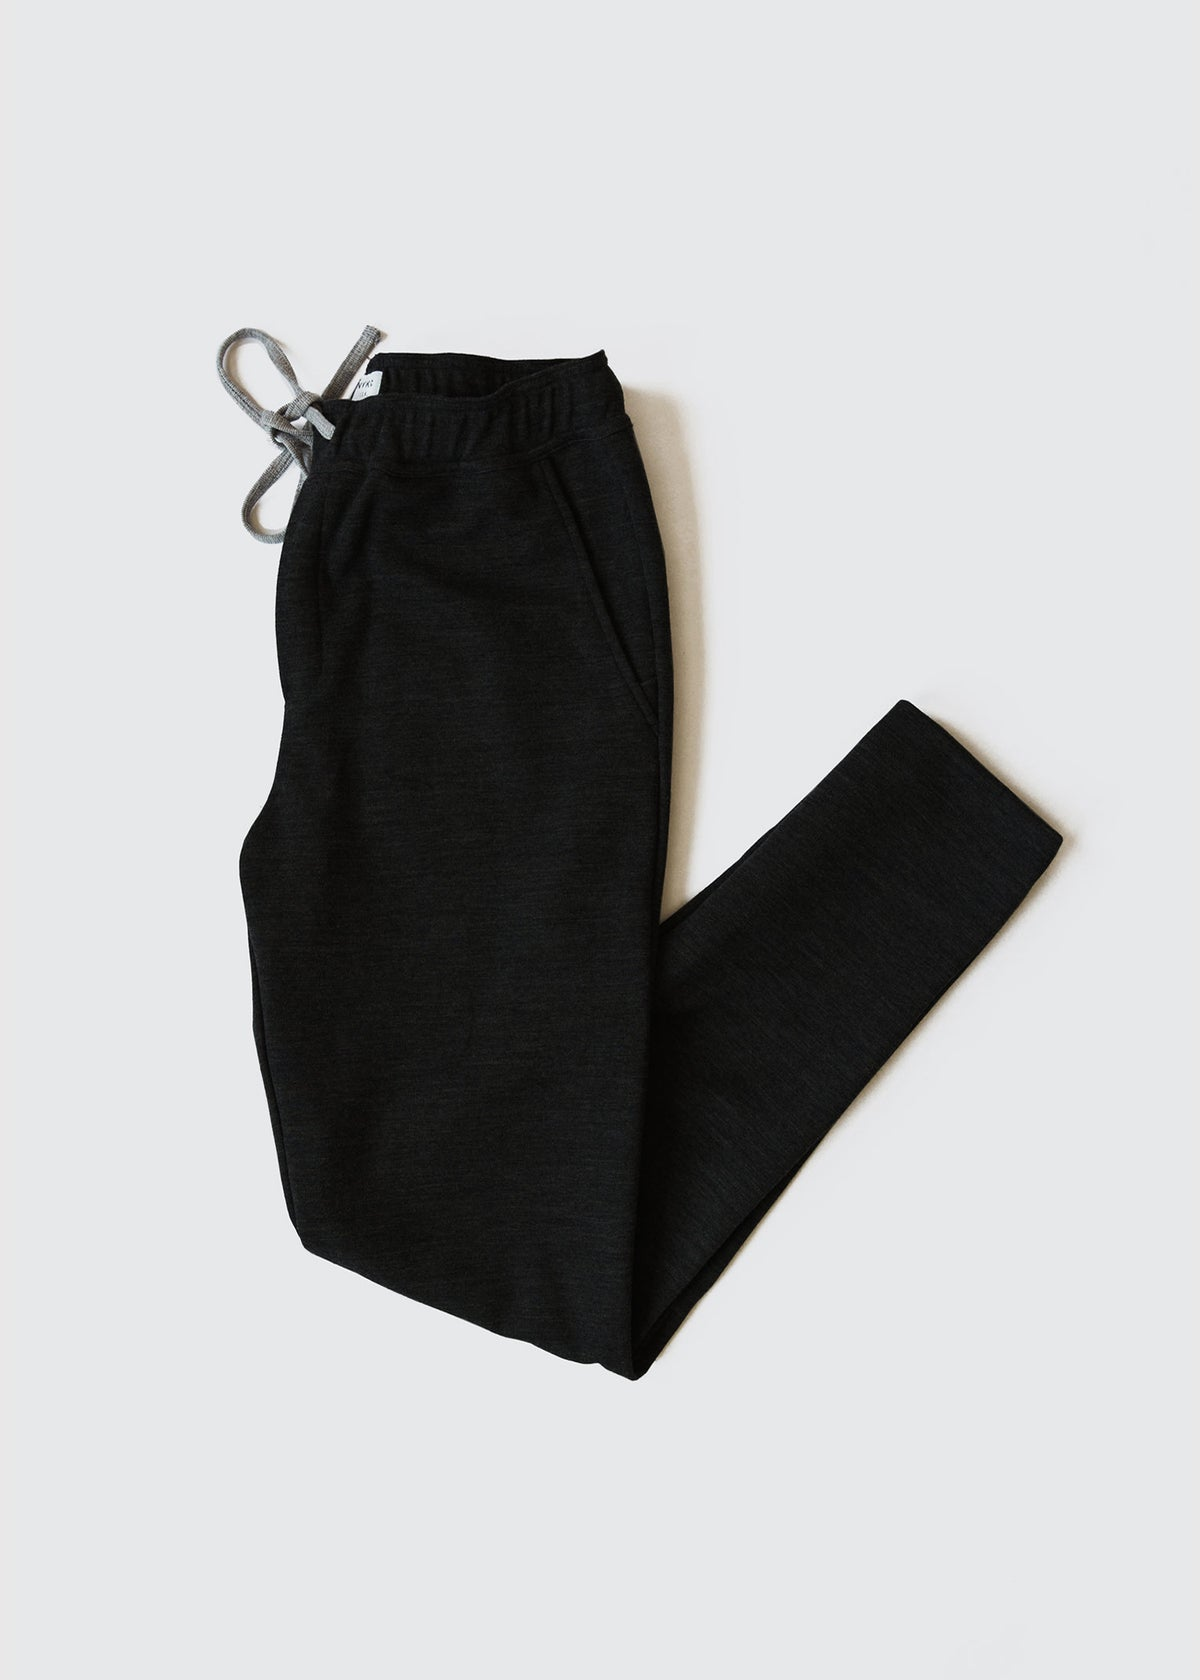 004 - TROUSER - BLACK - Wilson & Willy's - MPLS Neighbor Goods